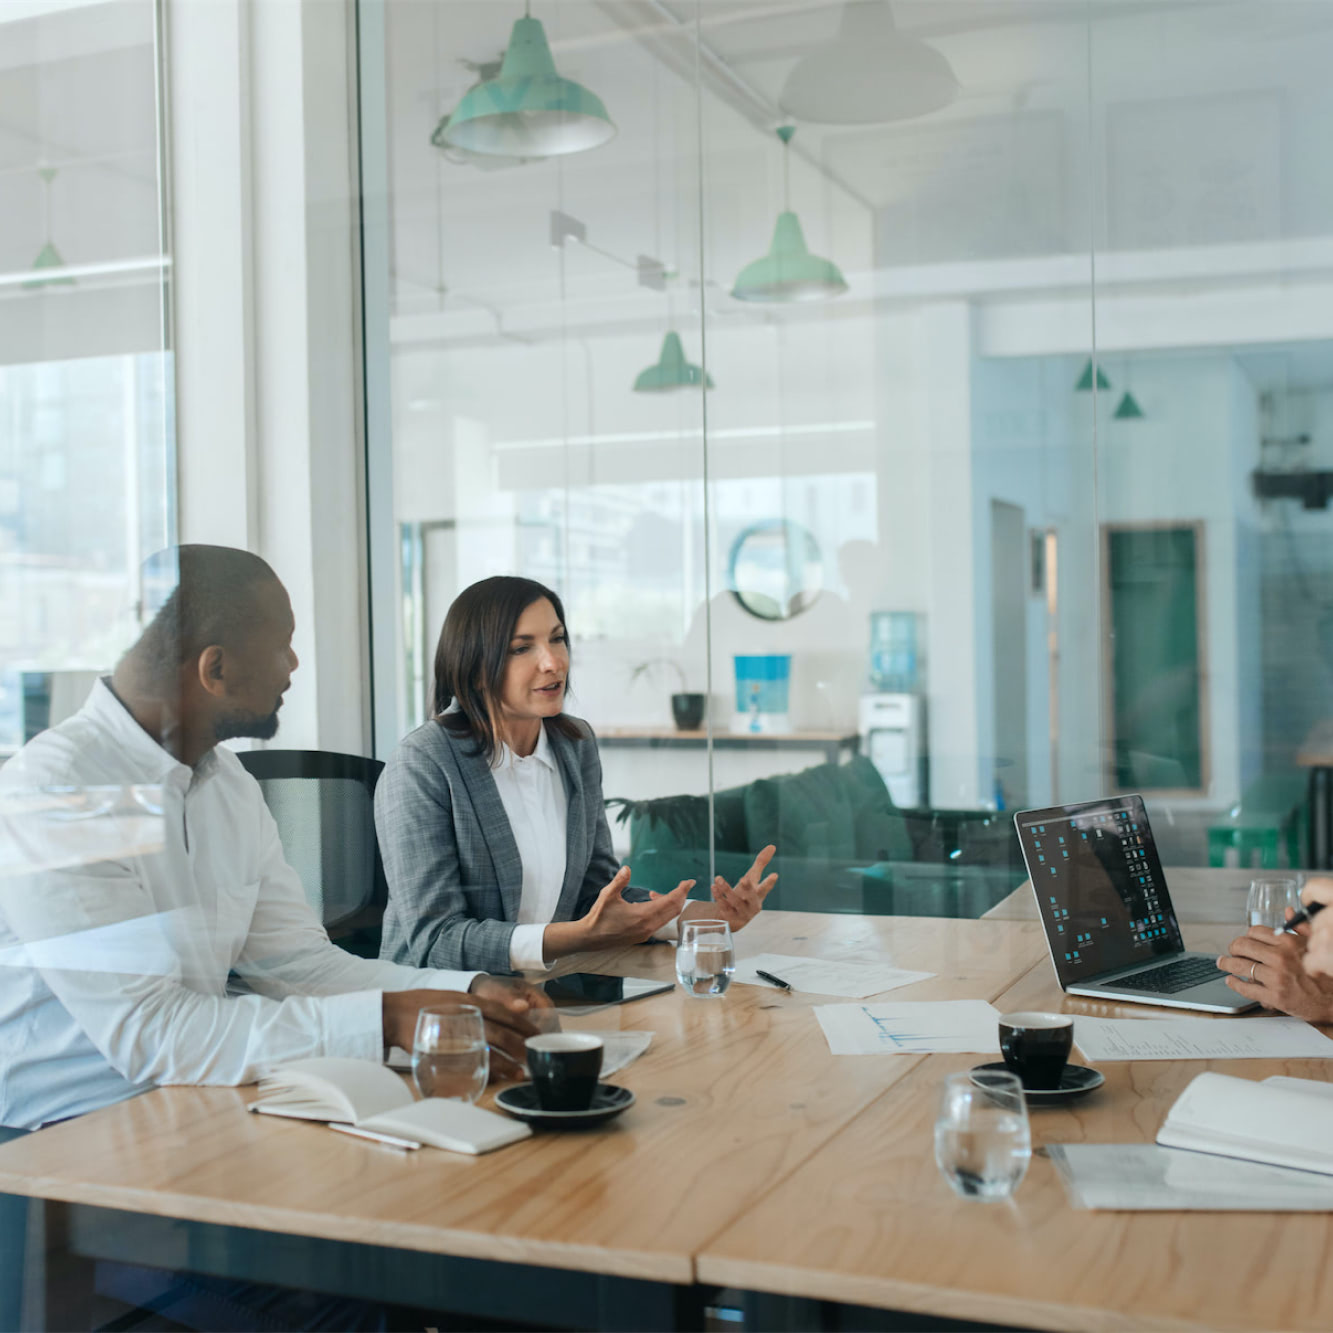 Business team discussing work around a table